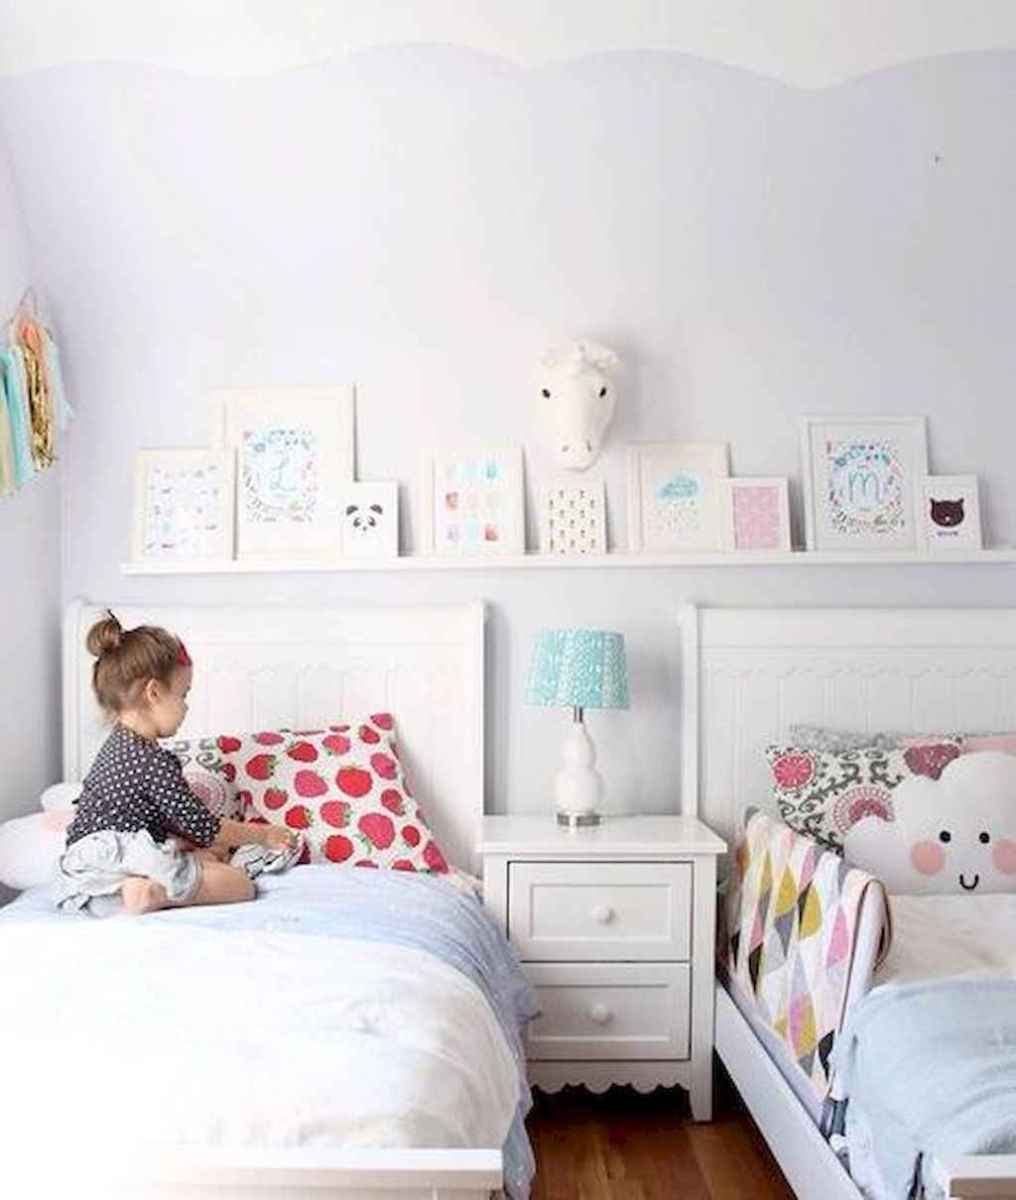 Simply ideas bedroom for kids (53)